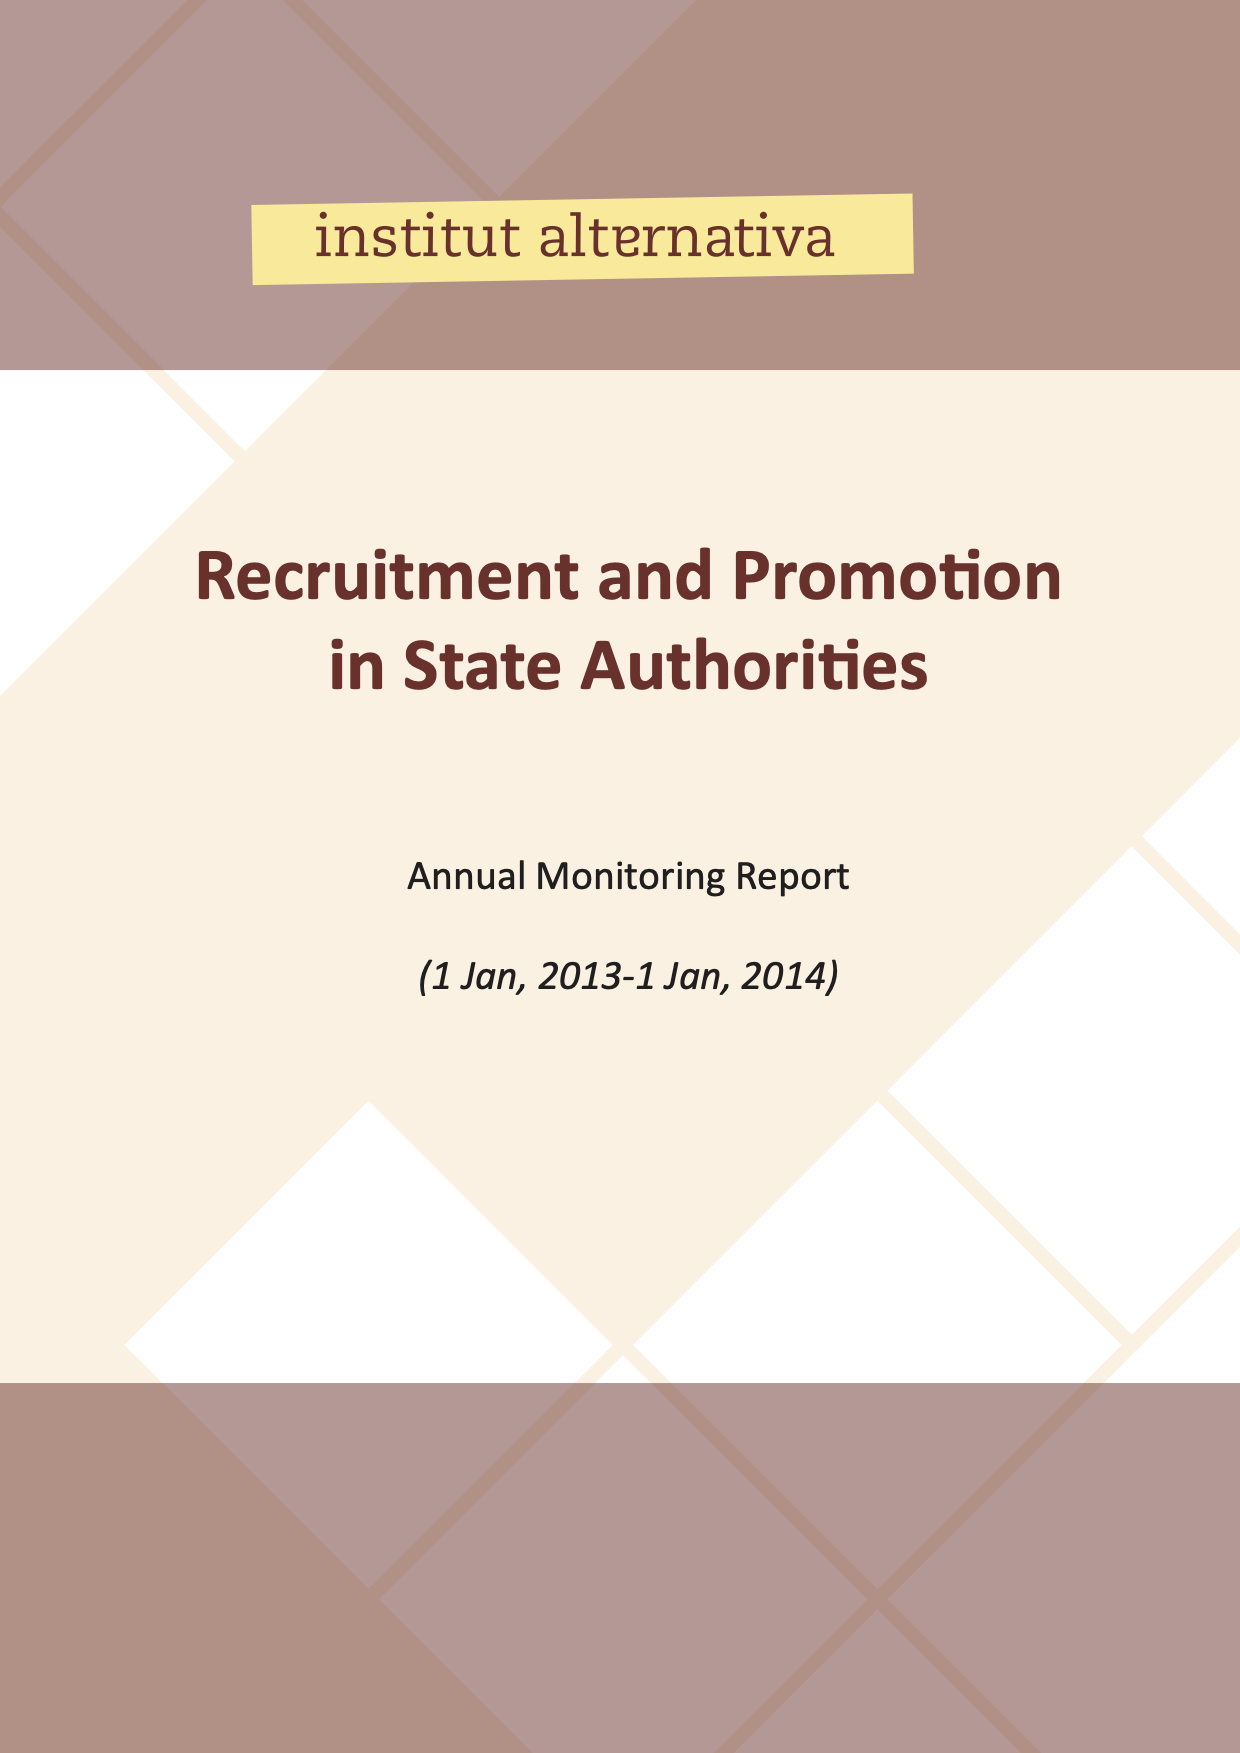 recruitment-and-promotion-in-state-administration